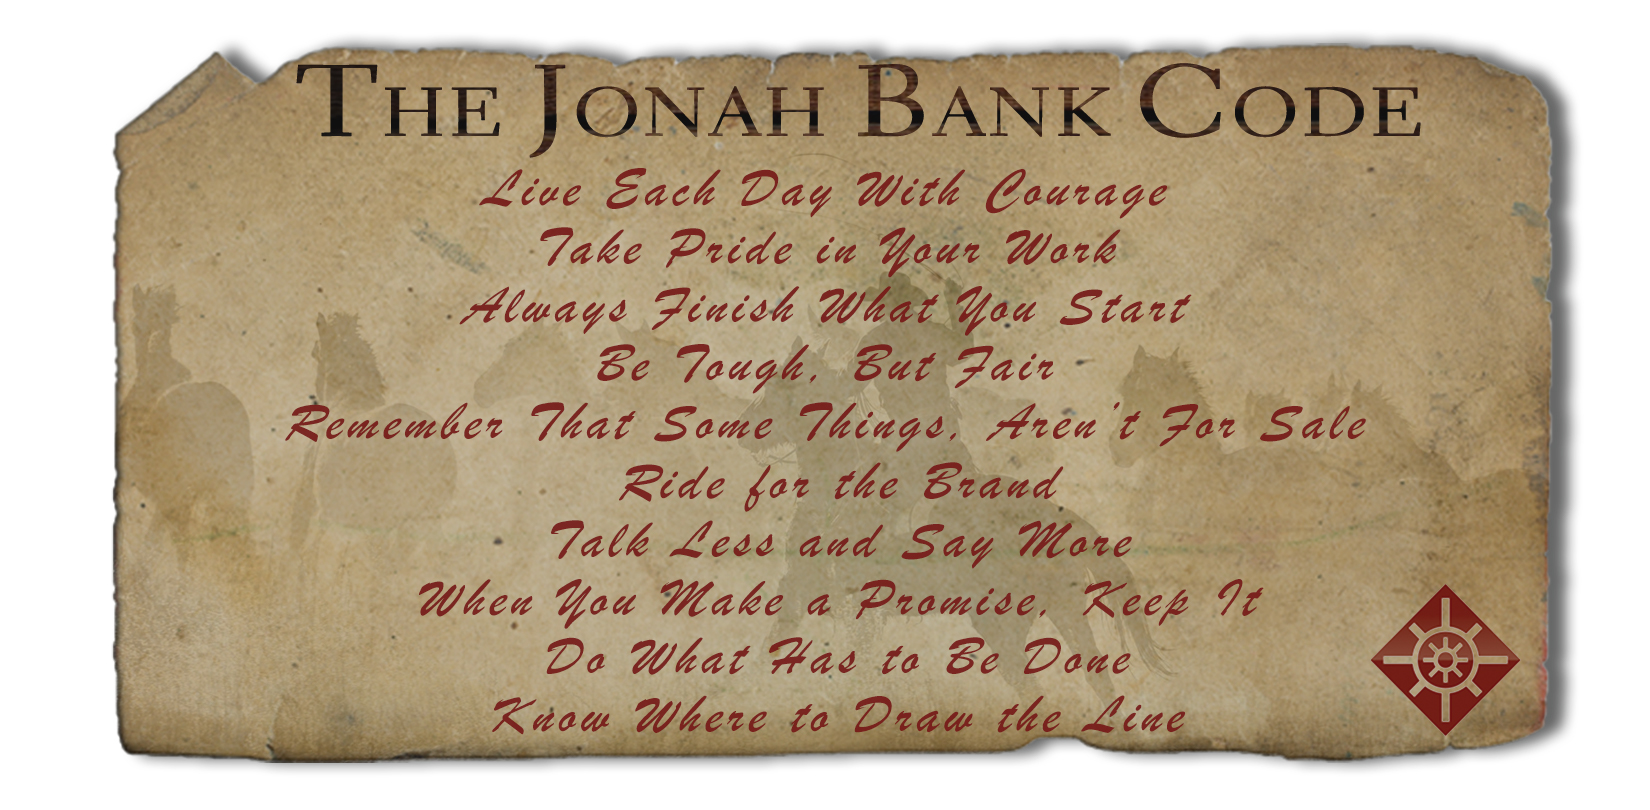 The Jonah Bank Code